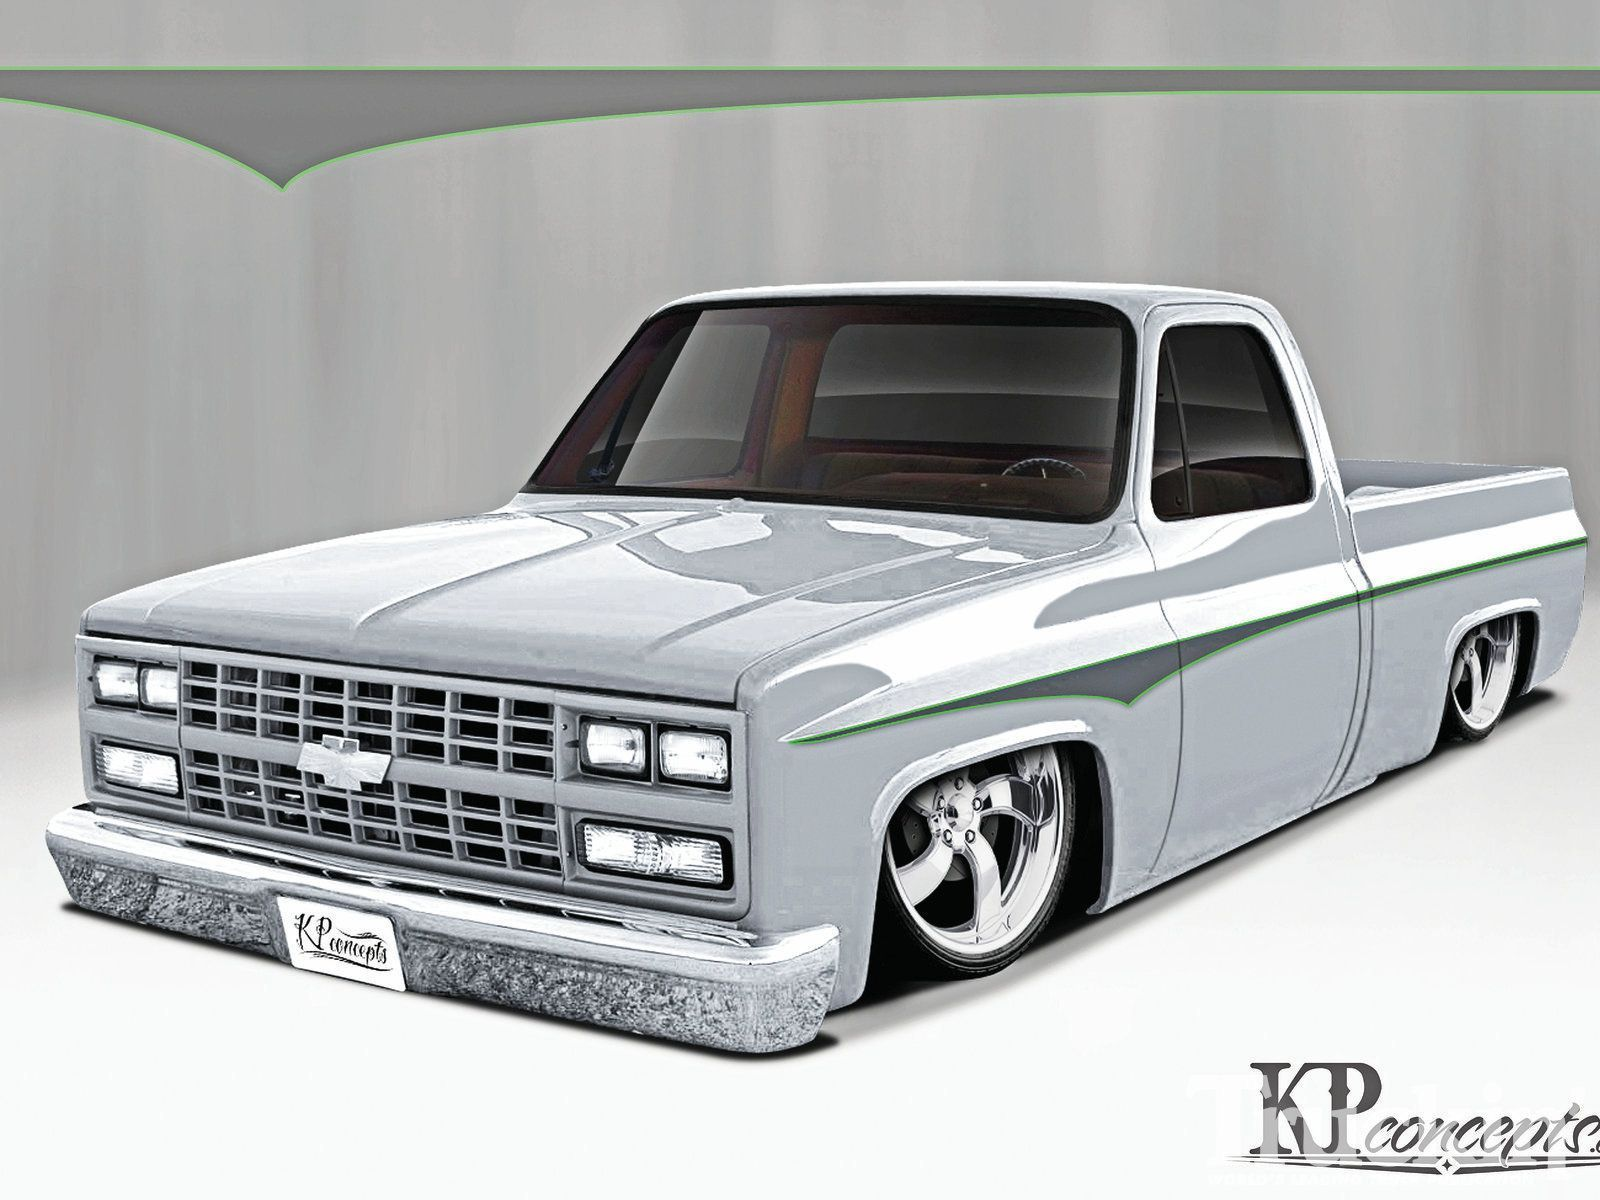 1977 chevy c10 stepside car interior design - Chevy Trucks Chevy C10 Custom Trucks Super Cars Hot Wheels Lowered Trucks Old Cars Car Stuff Cars Motorcycles